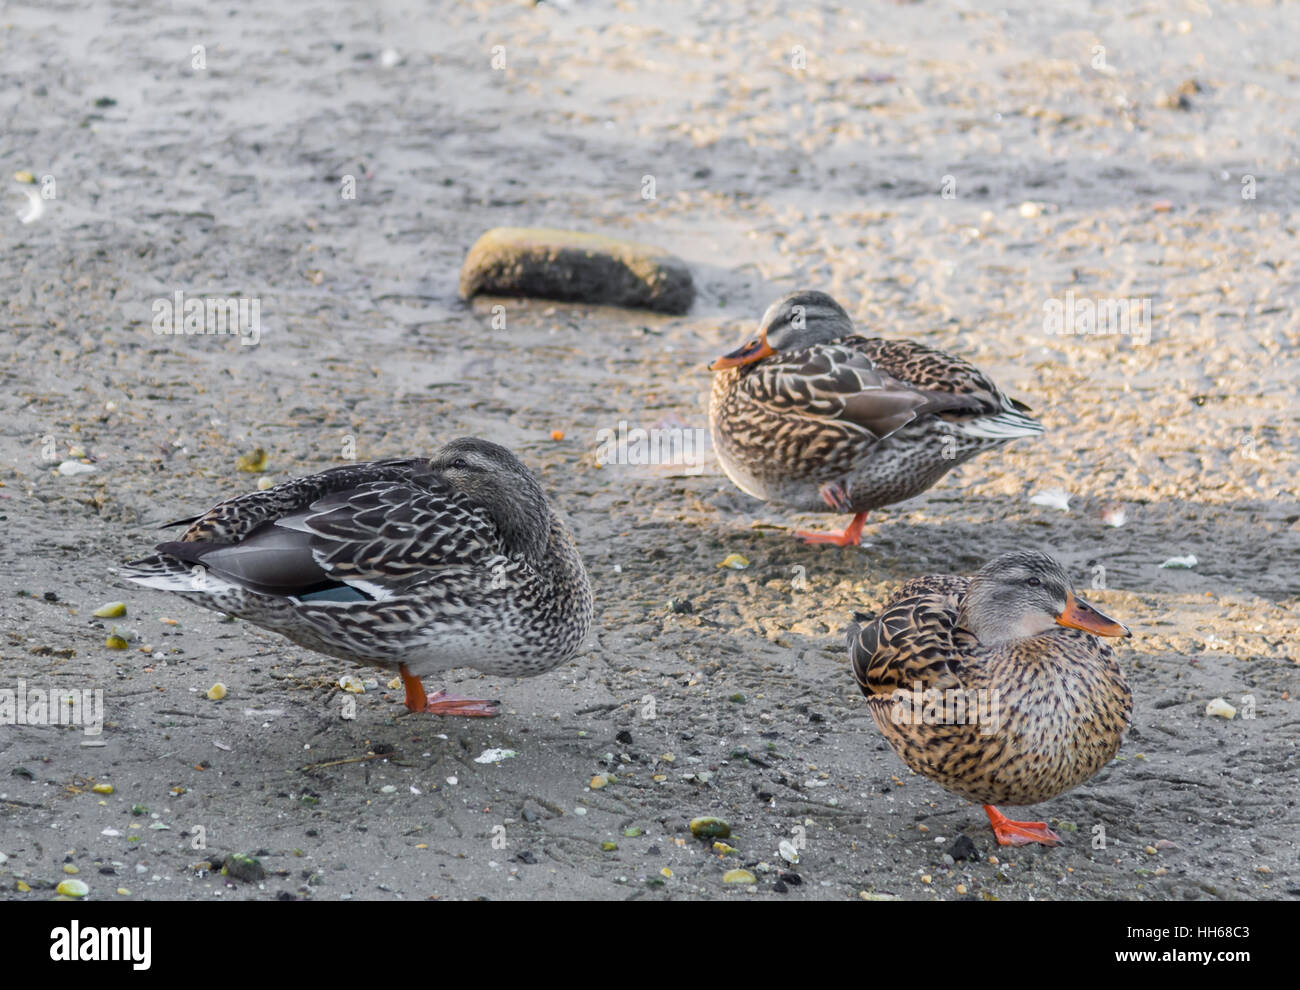 a group of three mallards, ducks all standing on one leg each in Sag Harbor, NY - Stock Image